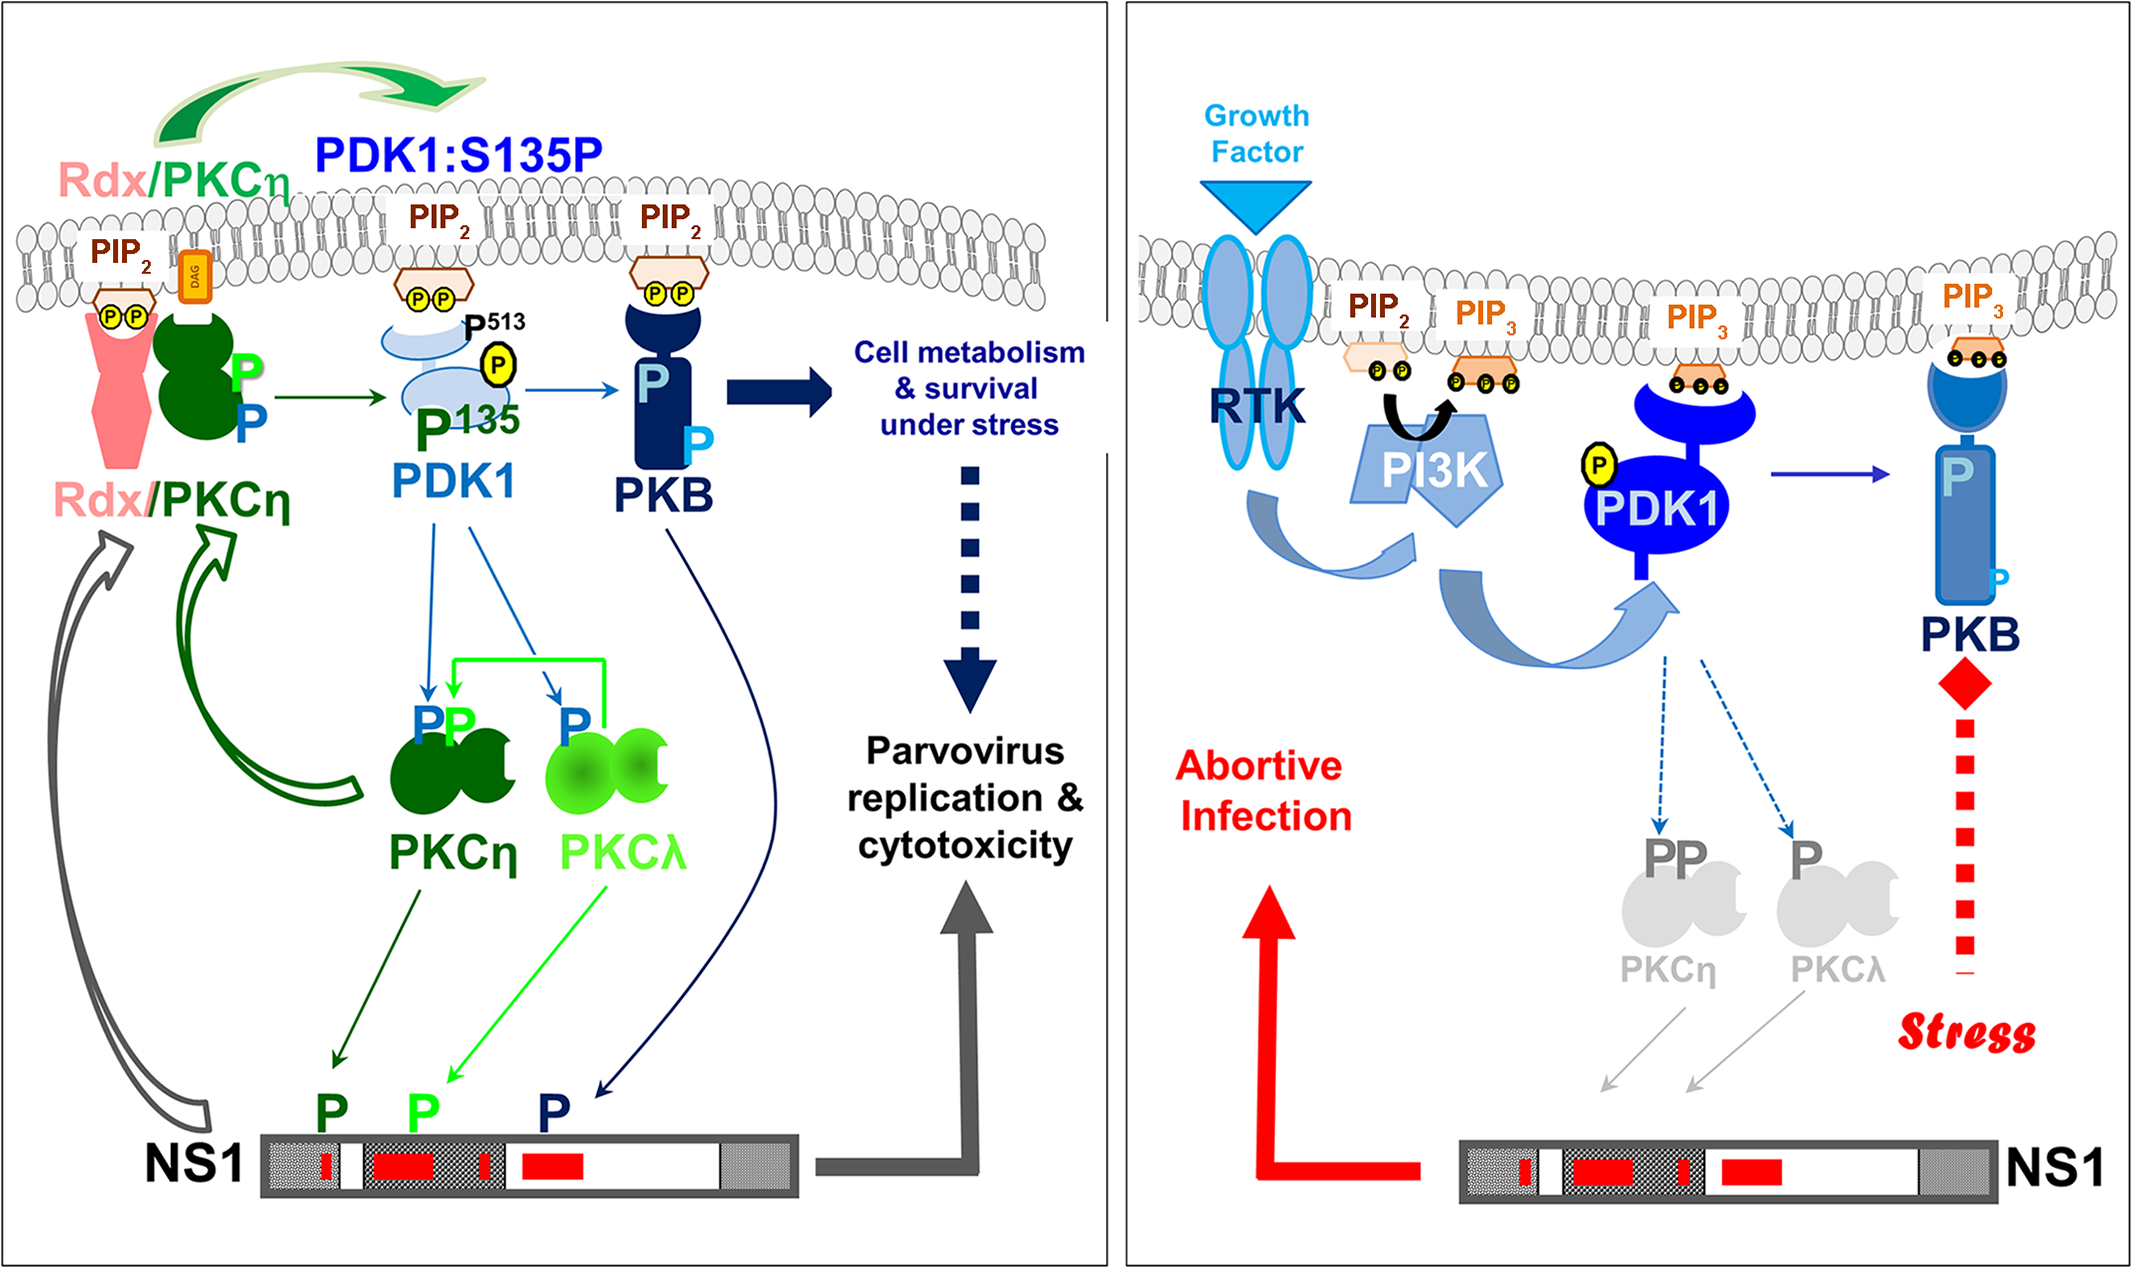 Interdependence of PV propagation and activation of the PDK/PKC/PKB signaling cascade.